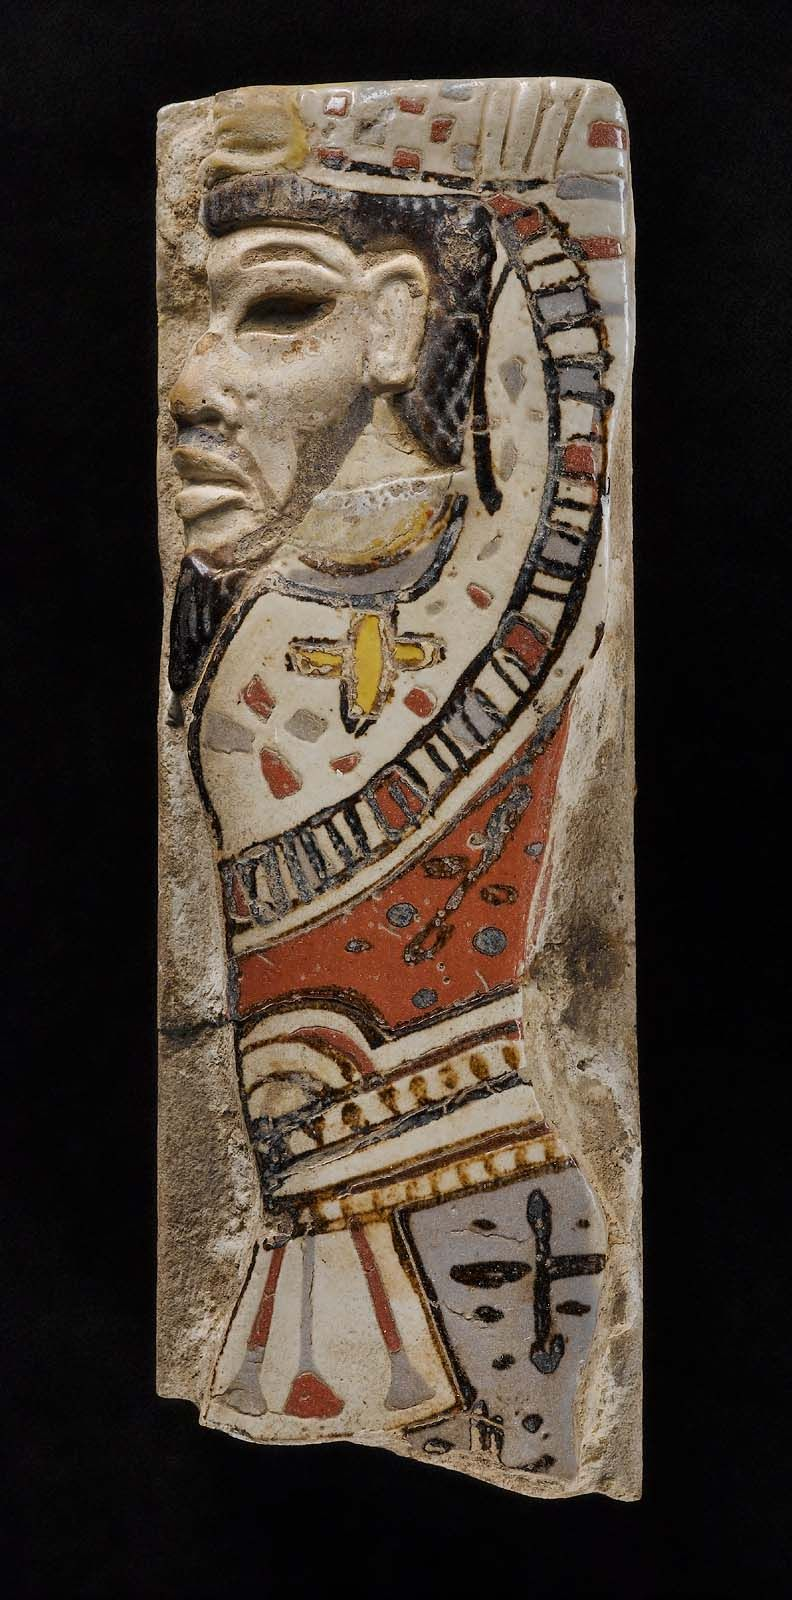 Tile With Hittite Chief Egyptian New Kingdom 20th Dynasty Reign Of Ramesses Ii 1184 1153 B C Antiguo Arte Egipcio Arte Egipcio Y Egipto